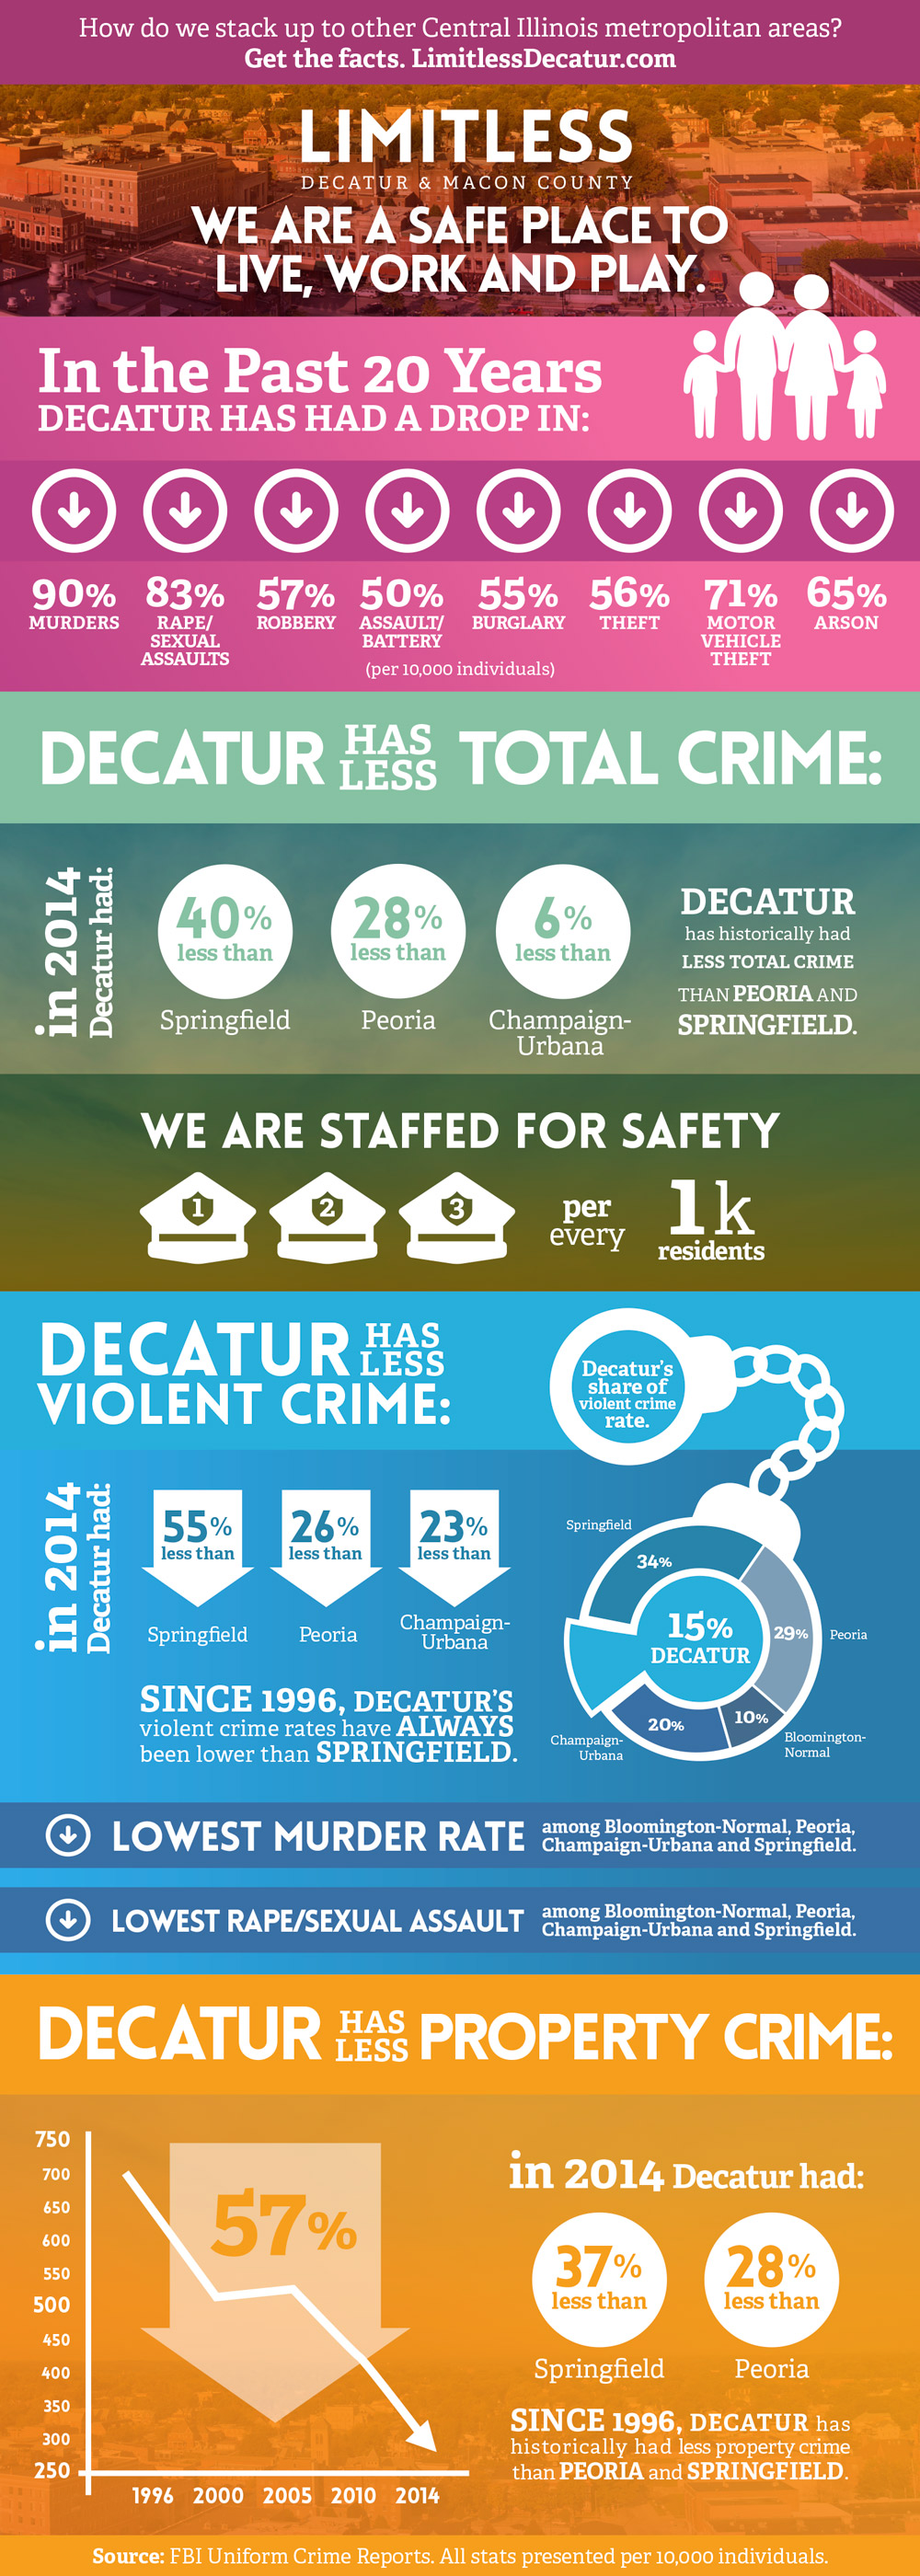 EDC-DL-Safety-Infographic-5x14-4-04